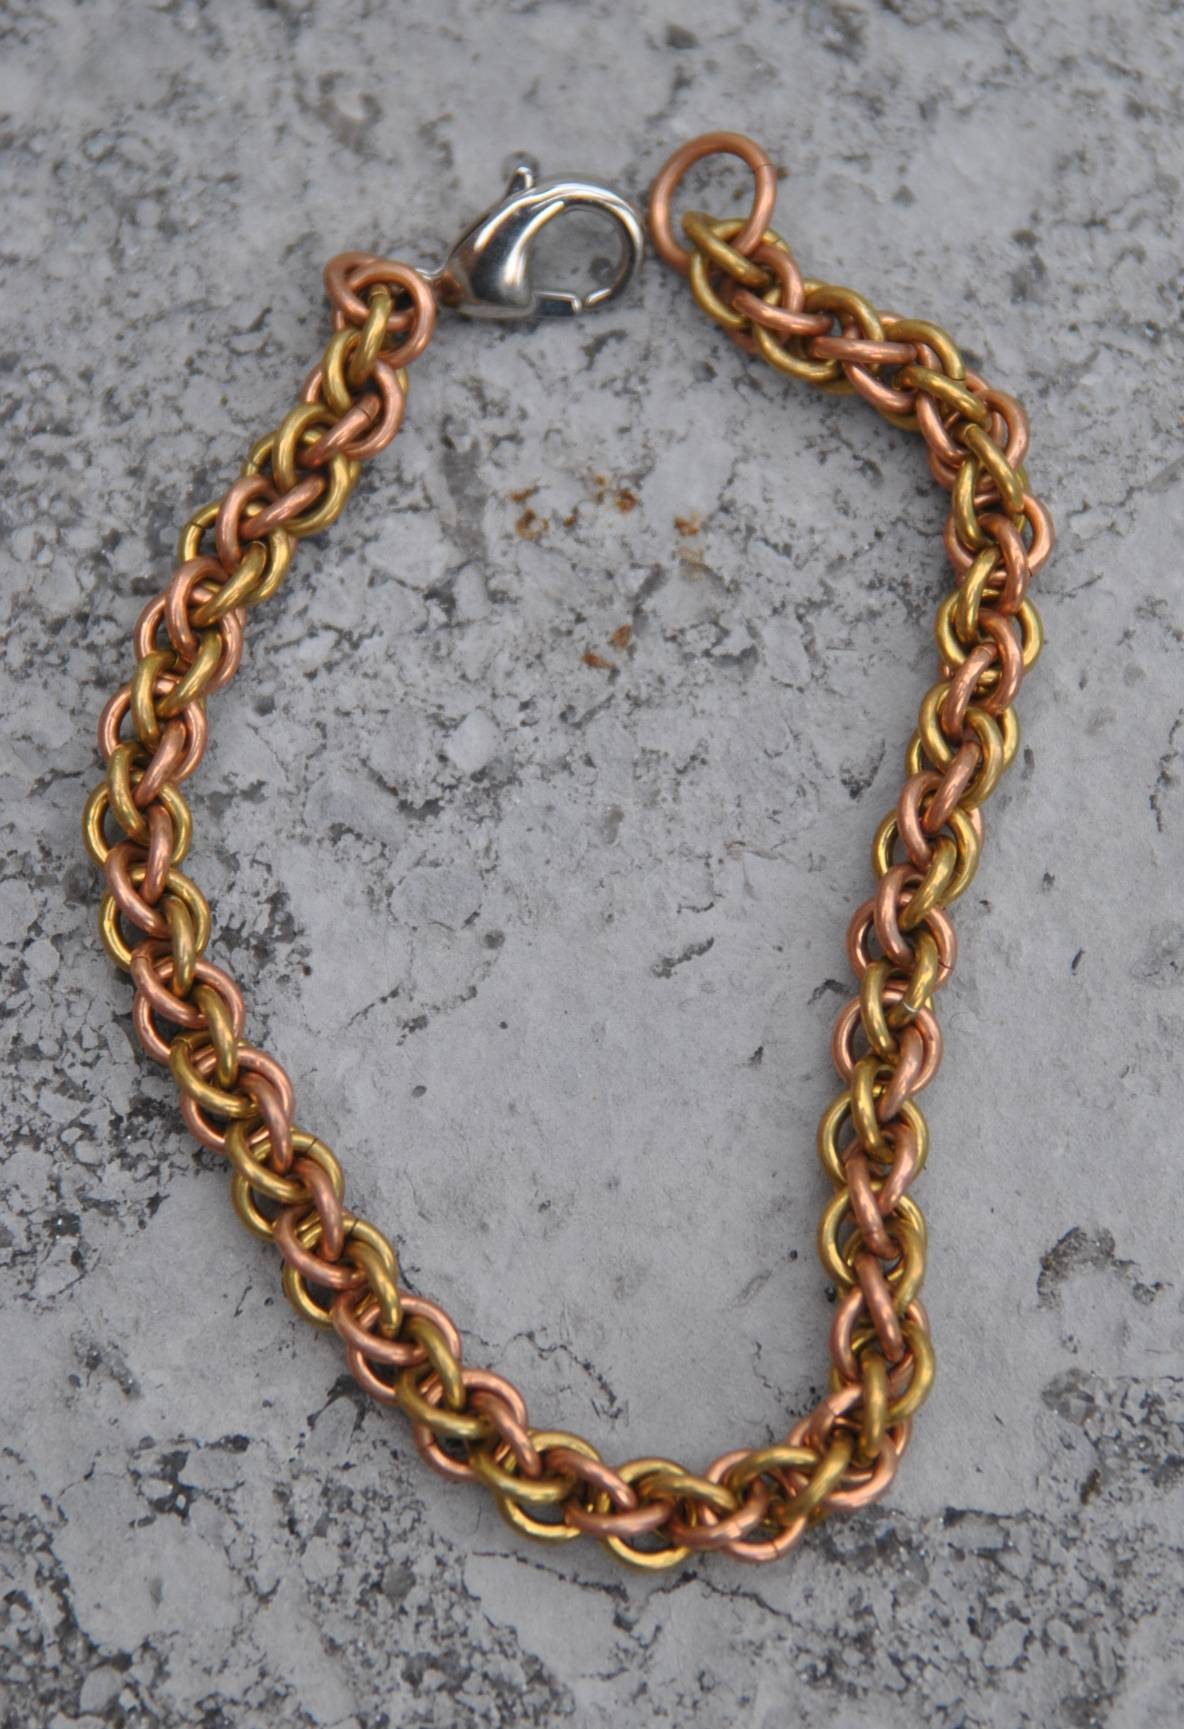 Bronze and Brass rope chain Bracelet